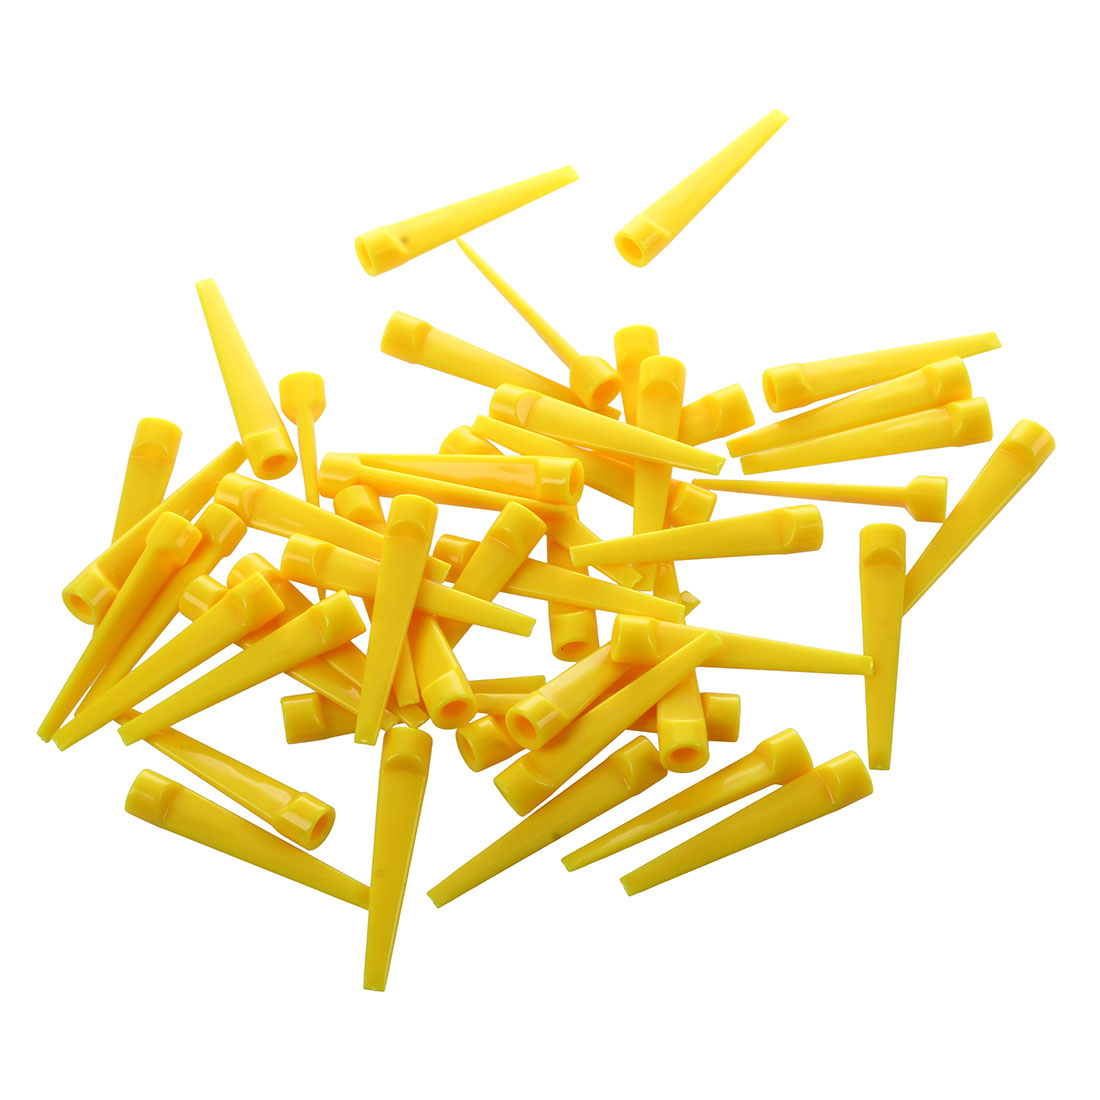 50pcs Plastic Golf Tee Tees (Yellow/Red/Blue/Fuchsia)